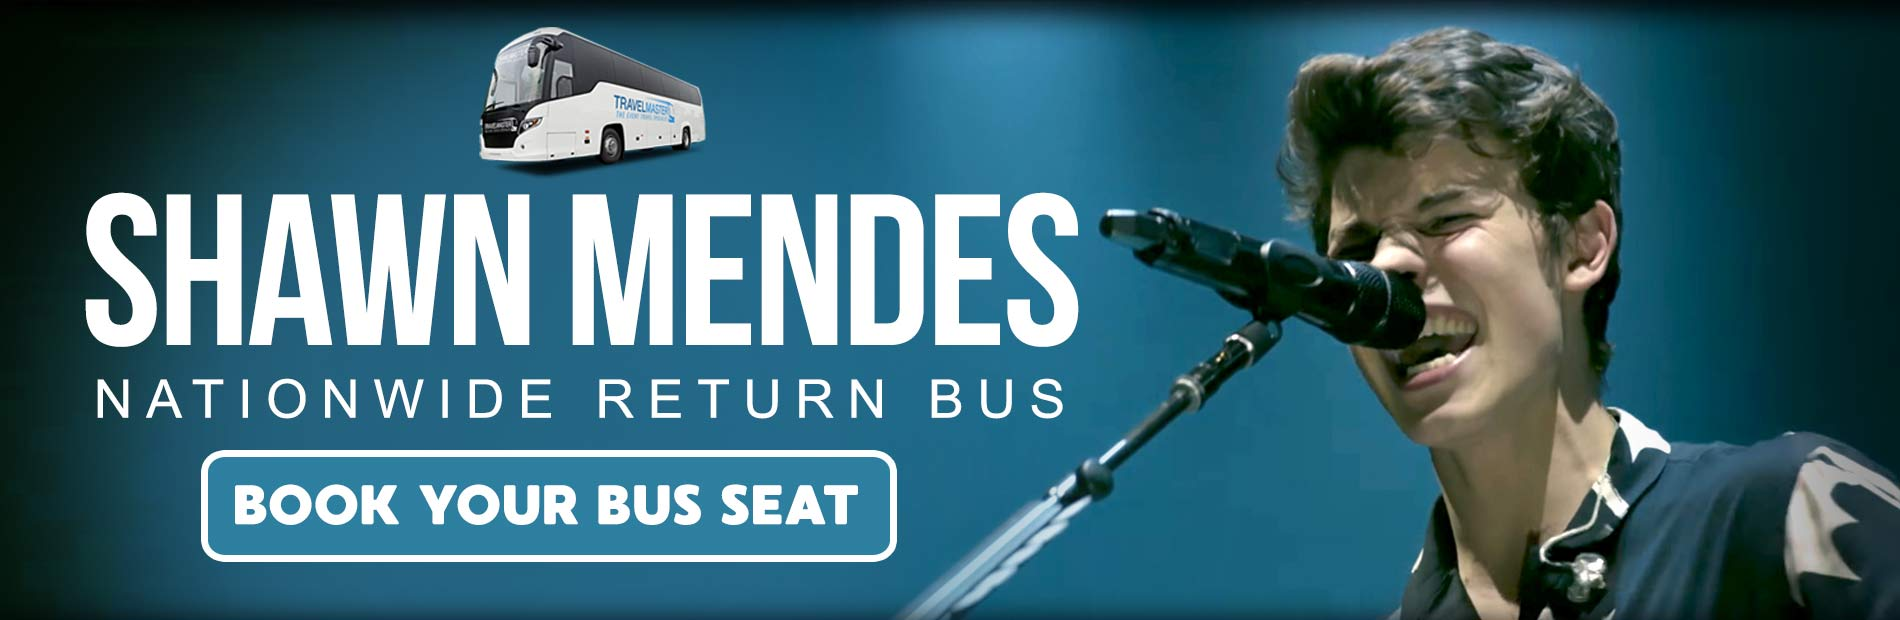 Bus to Shawn Mendes 3Arena